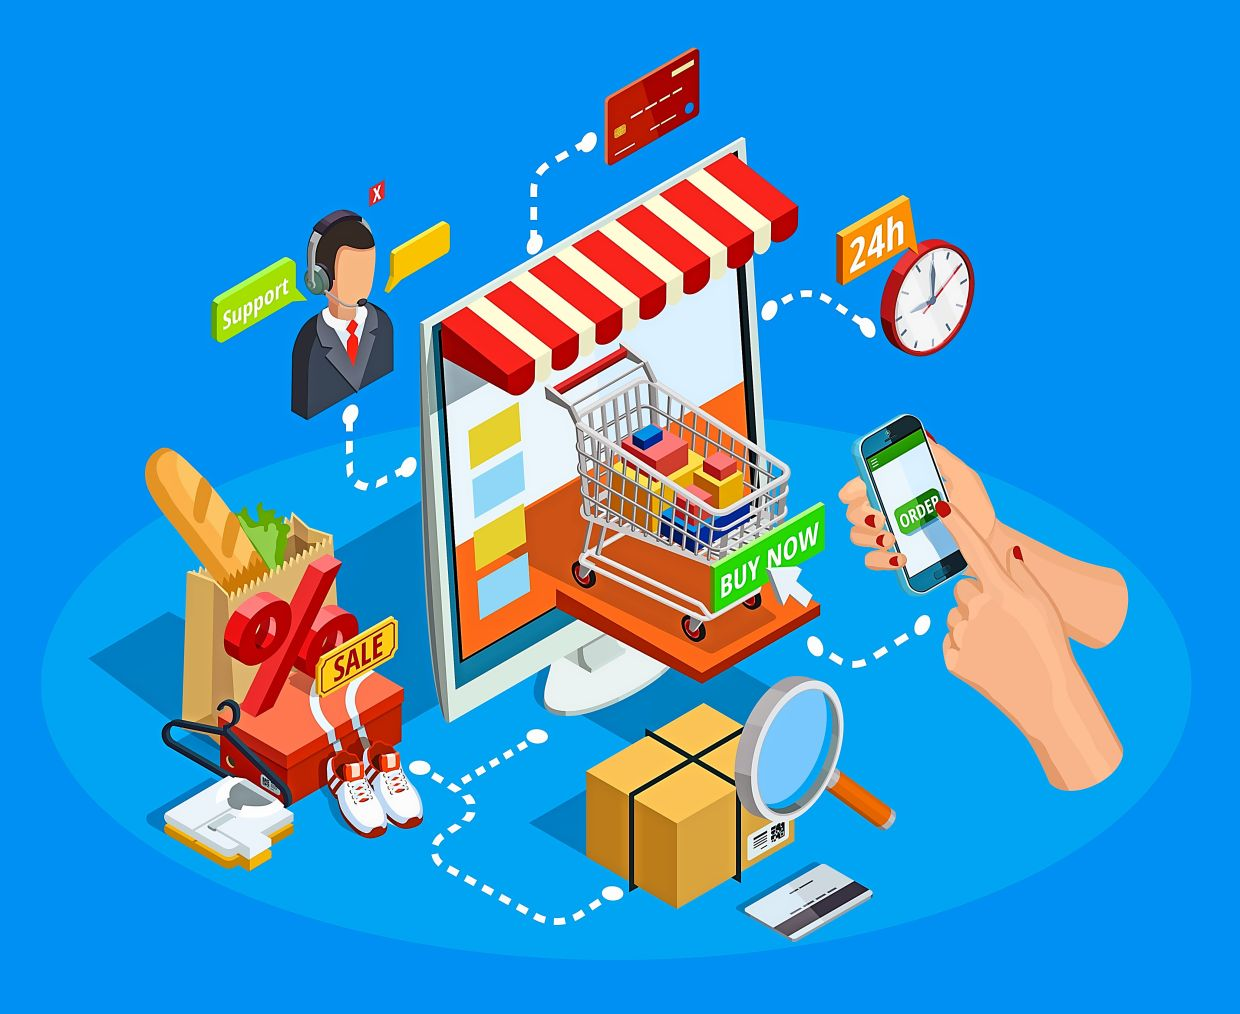 Online shopping has become very easy and convenient, says Eu.  Photo: macrovector